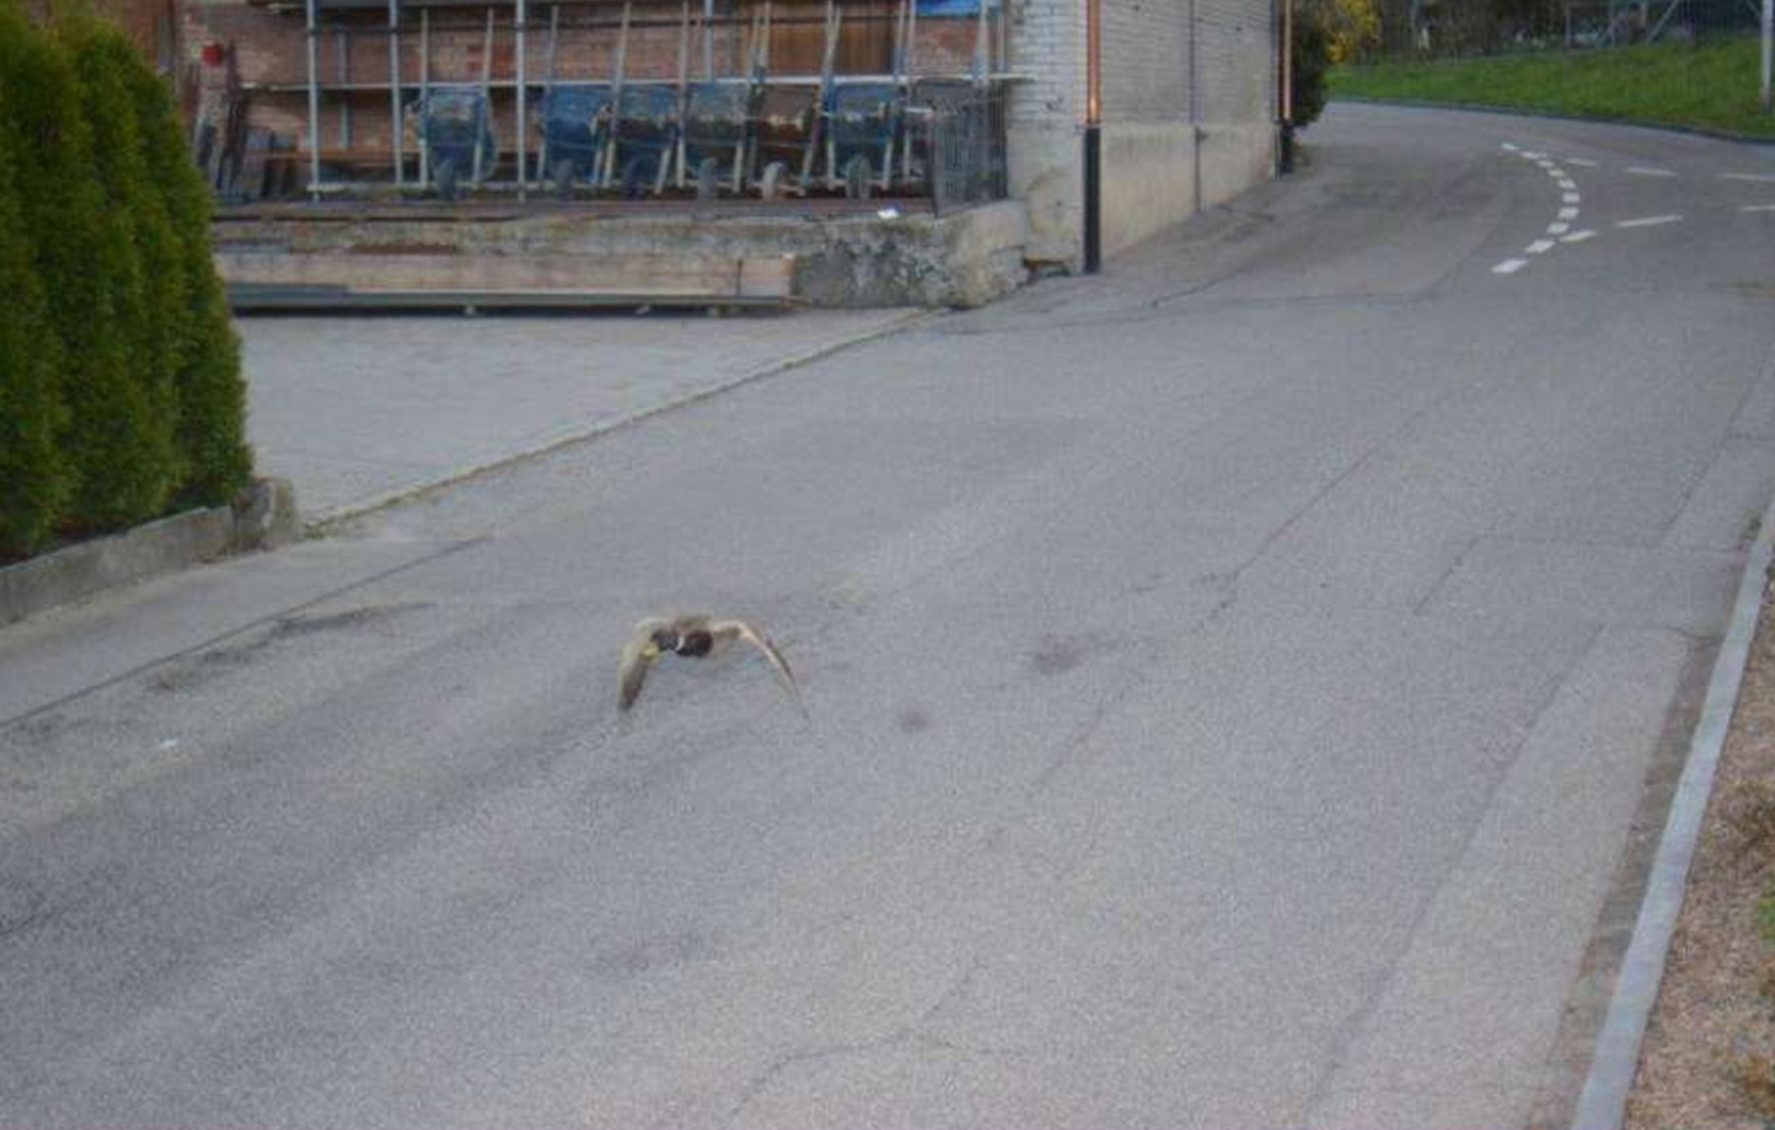 """Pic shows: The speeding duck caught on speed camera. This is the unusual traffic camera picture of a 'speeding' duck flying a whopping 13 mph over the limit. The picture was taken by a speed camera in Koeniz, a town in the Swiss Canton of Bern. The duck was flying at 52 kph (32.3 mph) in a 30-kph (18.6-mph) zone. The speed camera was likely triggered by the bird flapping its wings. Unfortunately, the municipality of Koeniz did not manage to find the duck's address. A municipality spokesman joked: """"It is unclear where the fine should be sent for flying too fast."""" It means the duck has had a lucky escape as drivers speeding by 13 mph in Switzerland would not only get a fine but face a criminal charge. Earlier this month, a German speed camera somehow captured a pooing dog on a lead instead of the speeding car behind it. The unusual suspect was caught by a speed camera in Moers, a town in the Western German state of North Rhine-Westphalia. The speed camera was triggered by the car behind the dog which was driving at 42 kph (26 mph) in a 30-kph (18.6-mph) zone. Instead of capturing the speeding vehicle, the camera pictured a person taking their dog for a walk. The picture shows the dog on a lead while doing a number two on the pavement. A police spokesman said: """"Whether the heap was cleaned up is not known to us."""" The police did not report if they managed to get a clean snap of the car's licence plate which is required for a speeding ticket. In 2016, a galloping horse and its rider were caught on camera on a forest road in the Eastern German state of Brandenburg when the speed trap caught the one-horse-power animal travelling at 43 kph (26.7 mph). As is customary in Germany, the police enlarged the face of the perpetrator and marked it in a box on the picture. A police spokeswoman said that no penalty was given at the time and noted that the horse in any case had no licence plate to track it down. In June 2014, police in the German state of Hesse captu"""